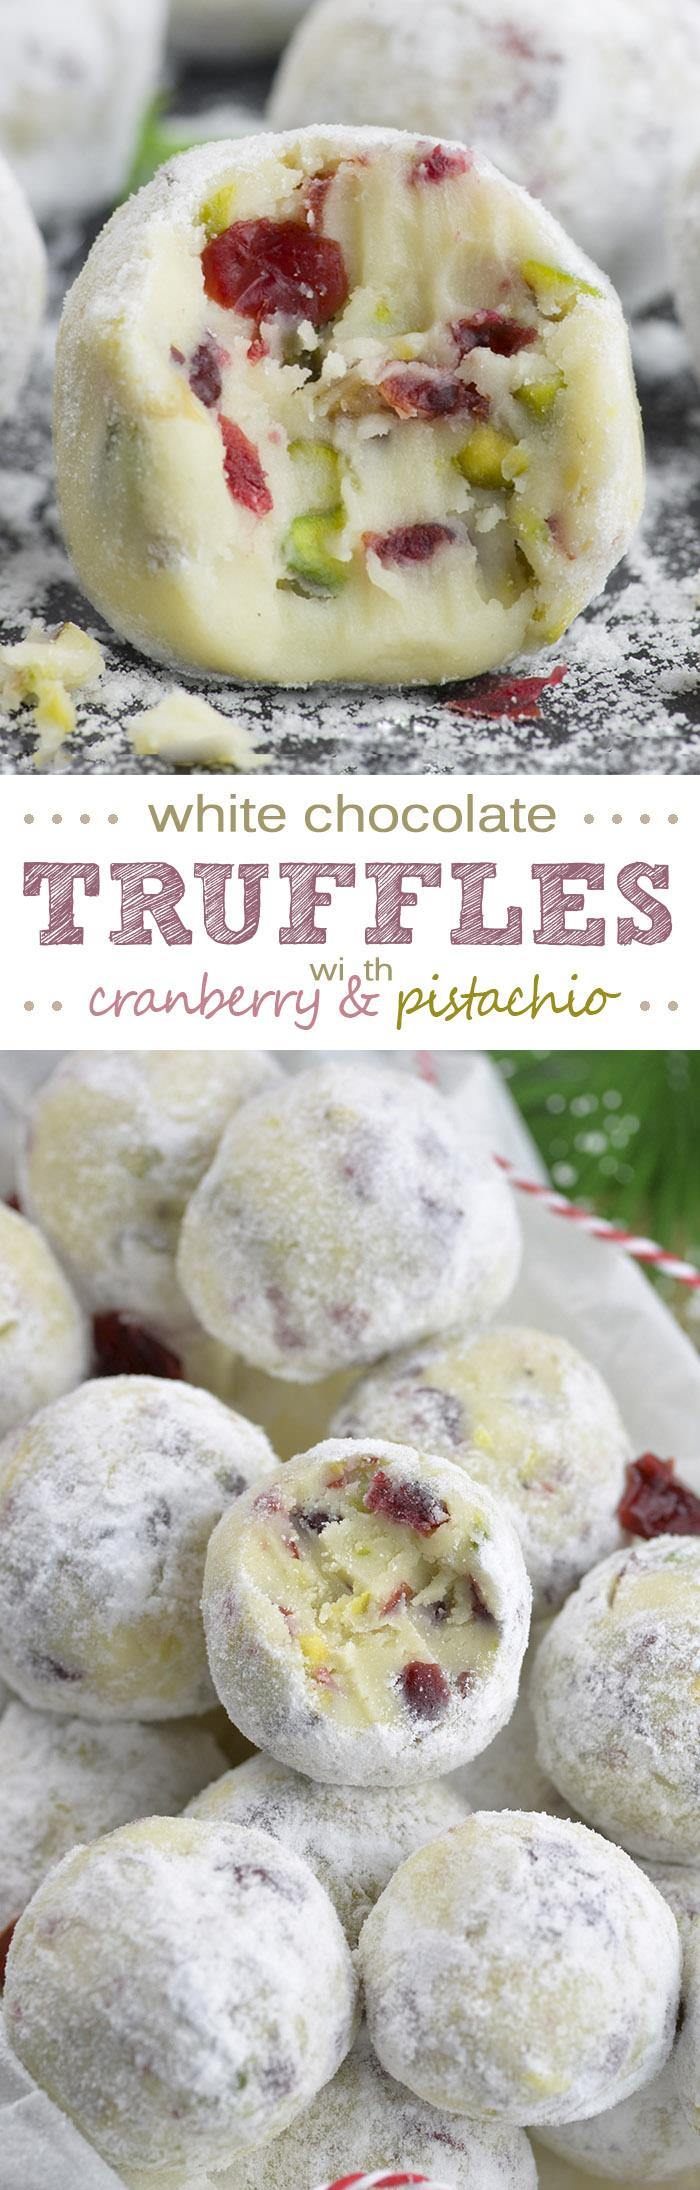 Cranberry Pistachio White Chocolate Truffles | Chocolate Dessert ...